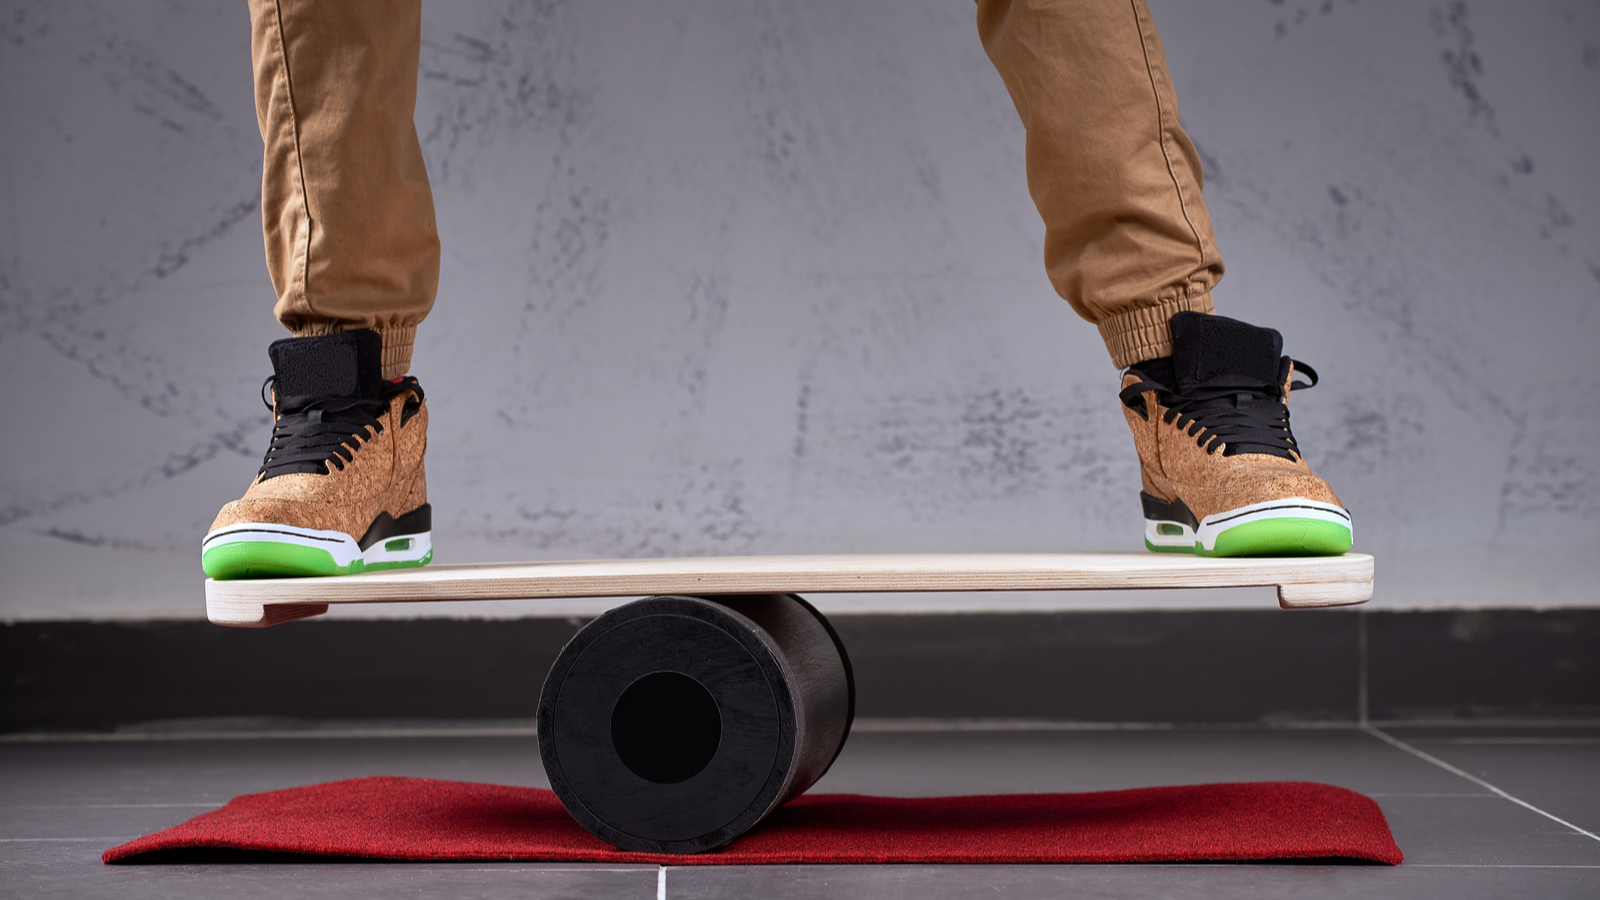 Oval wooden deck for balance board, solid plastic roller for balance board, person with skater shoes standing and balancing on deck